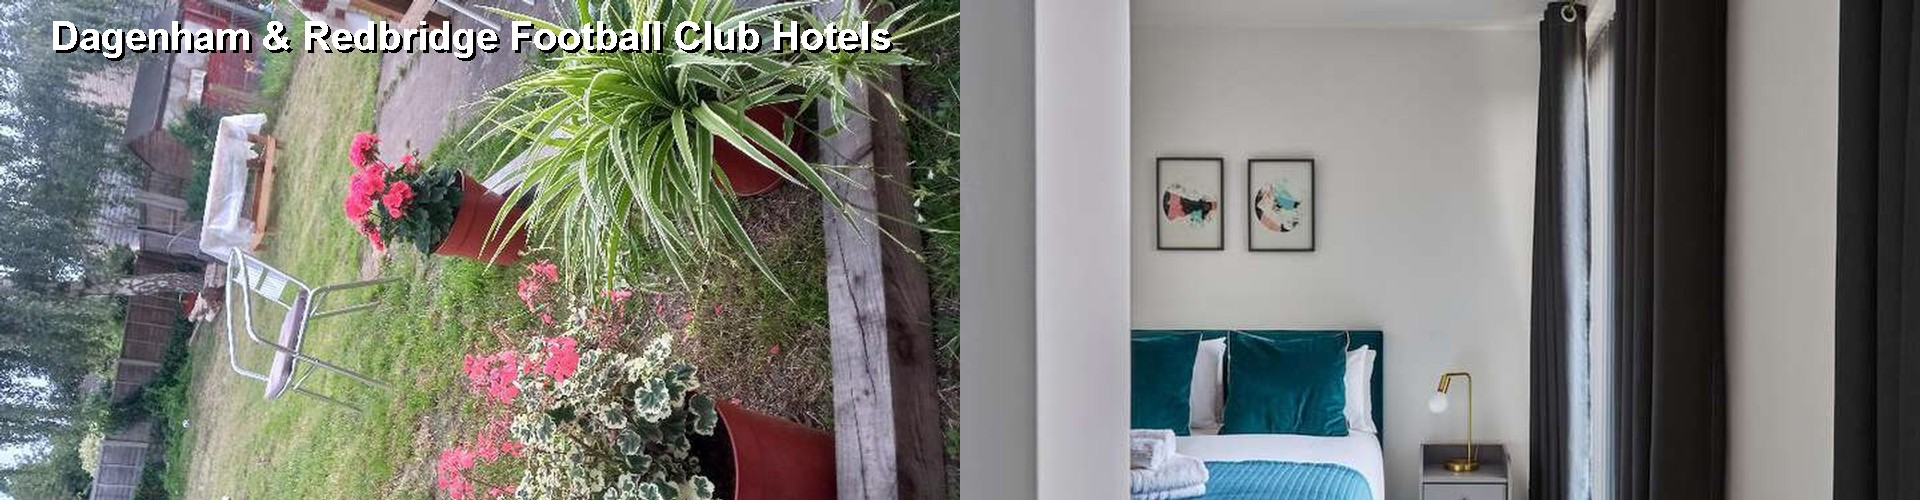 4 Best Hotels near Dagenham & Redbridge Football Club